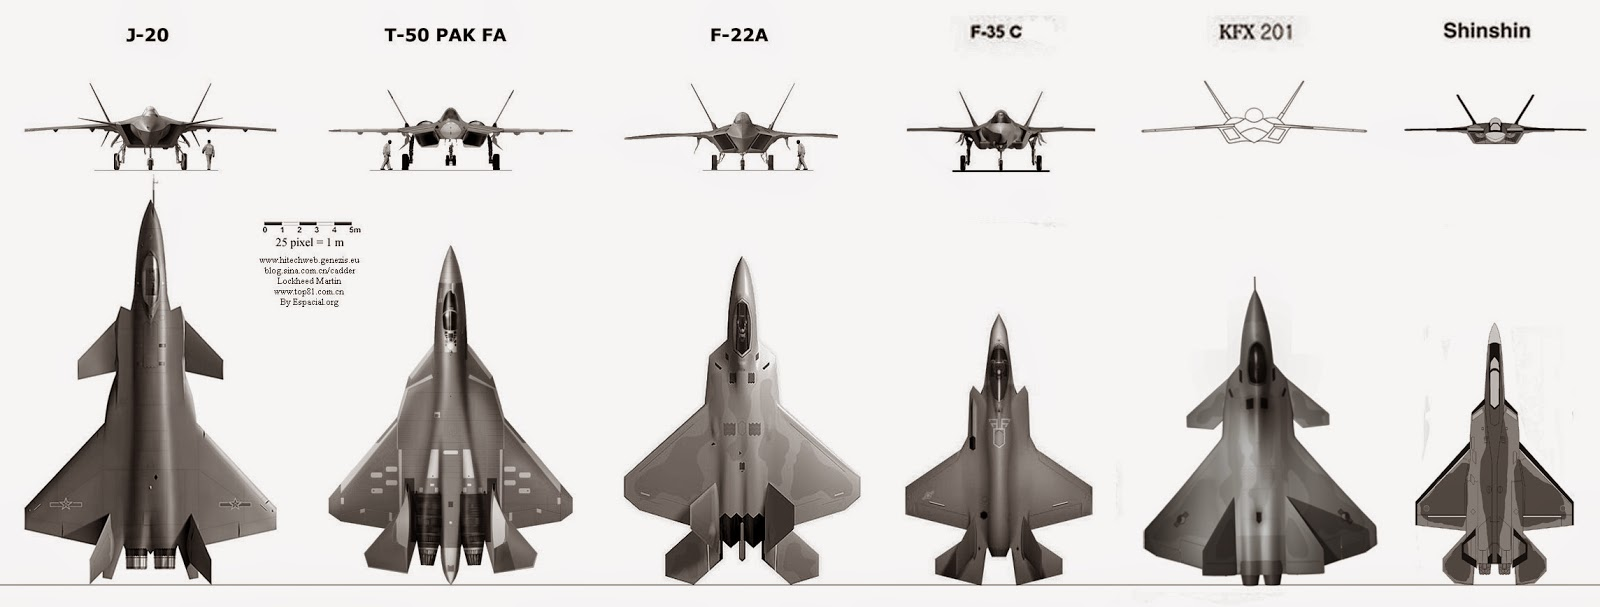 Next Big Future: Confirmation that China stole F35, F22 ...